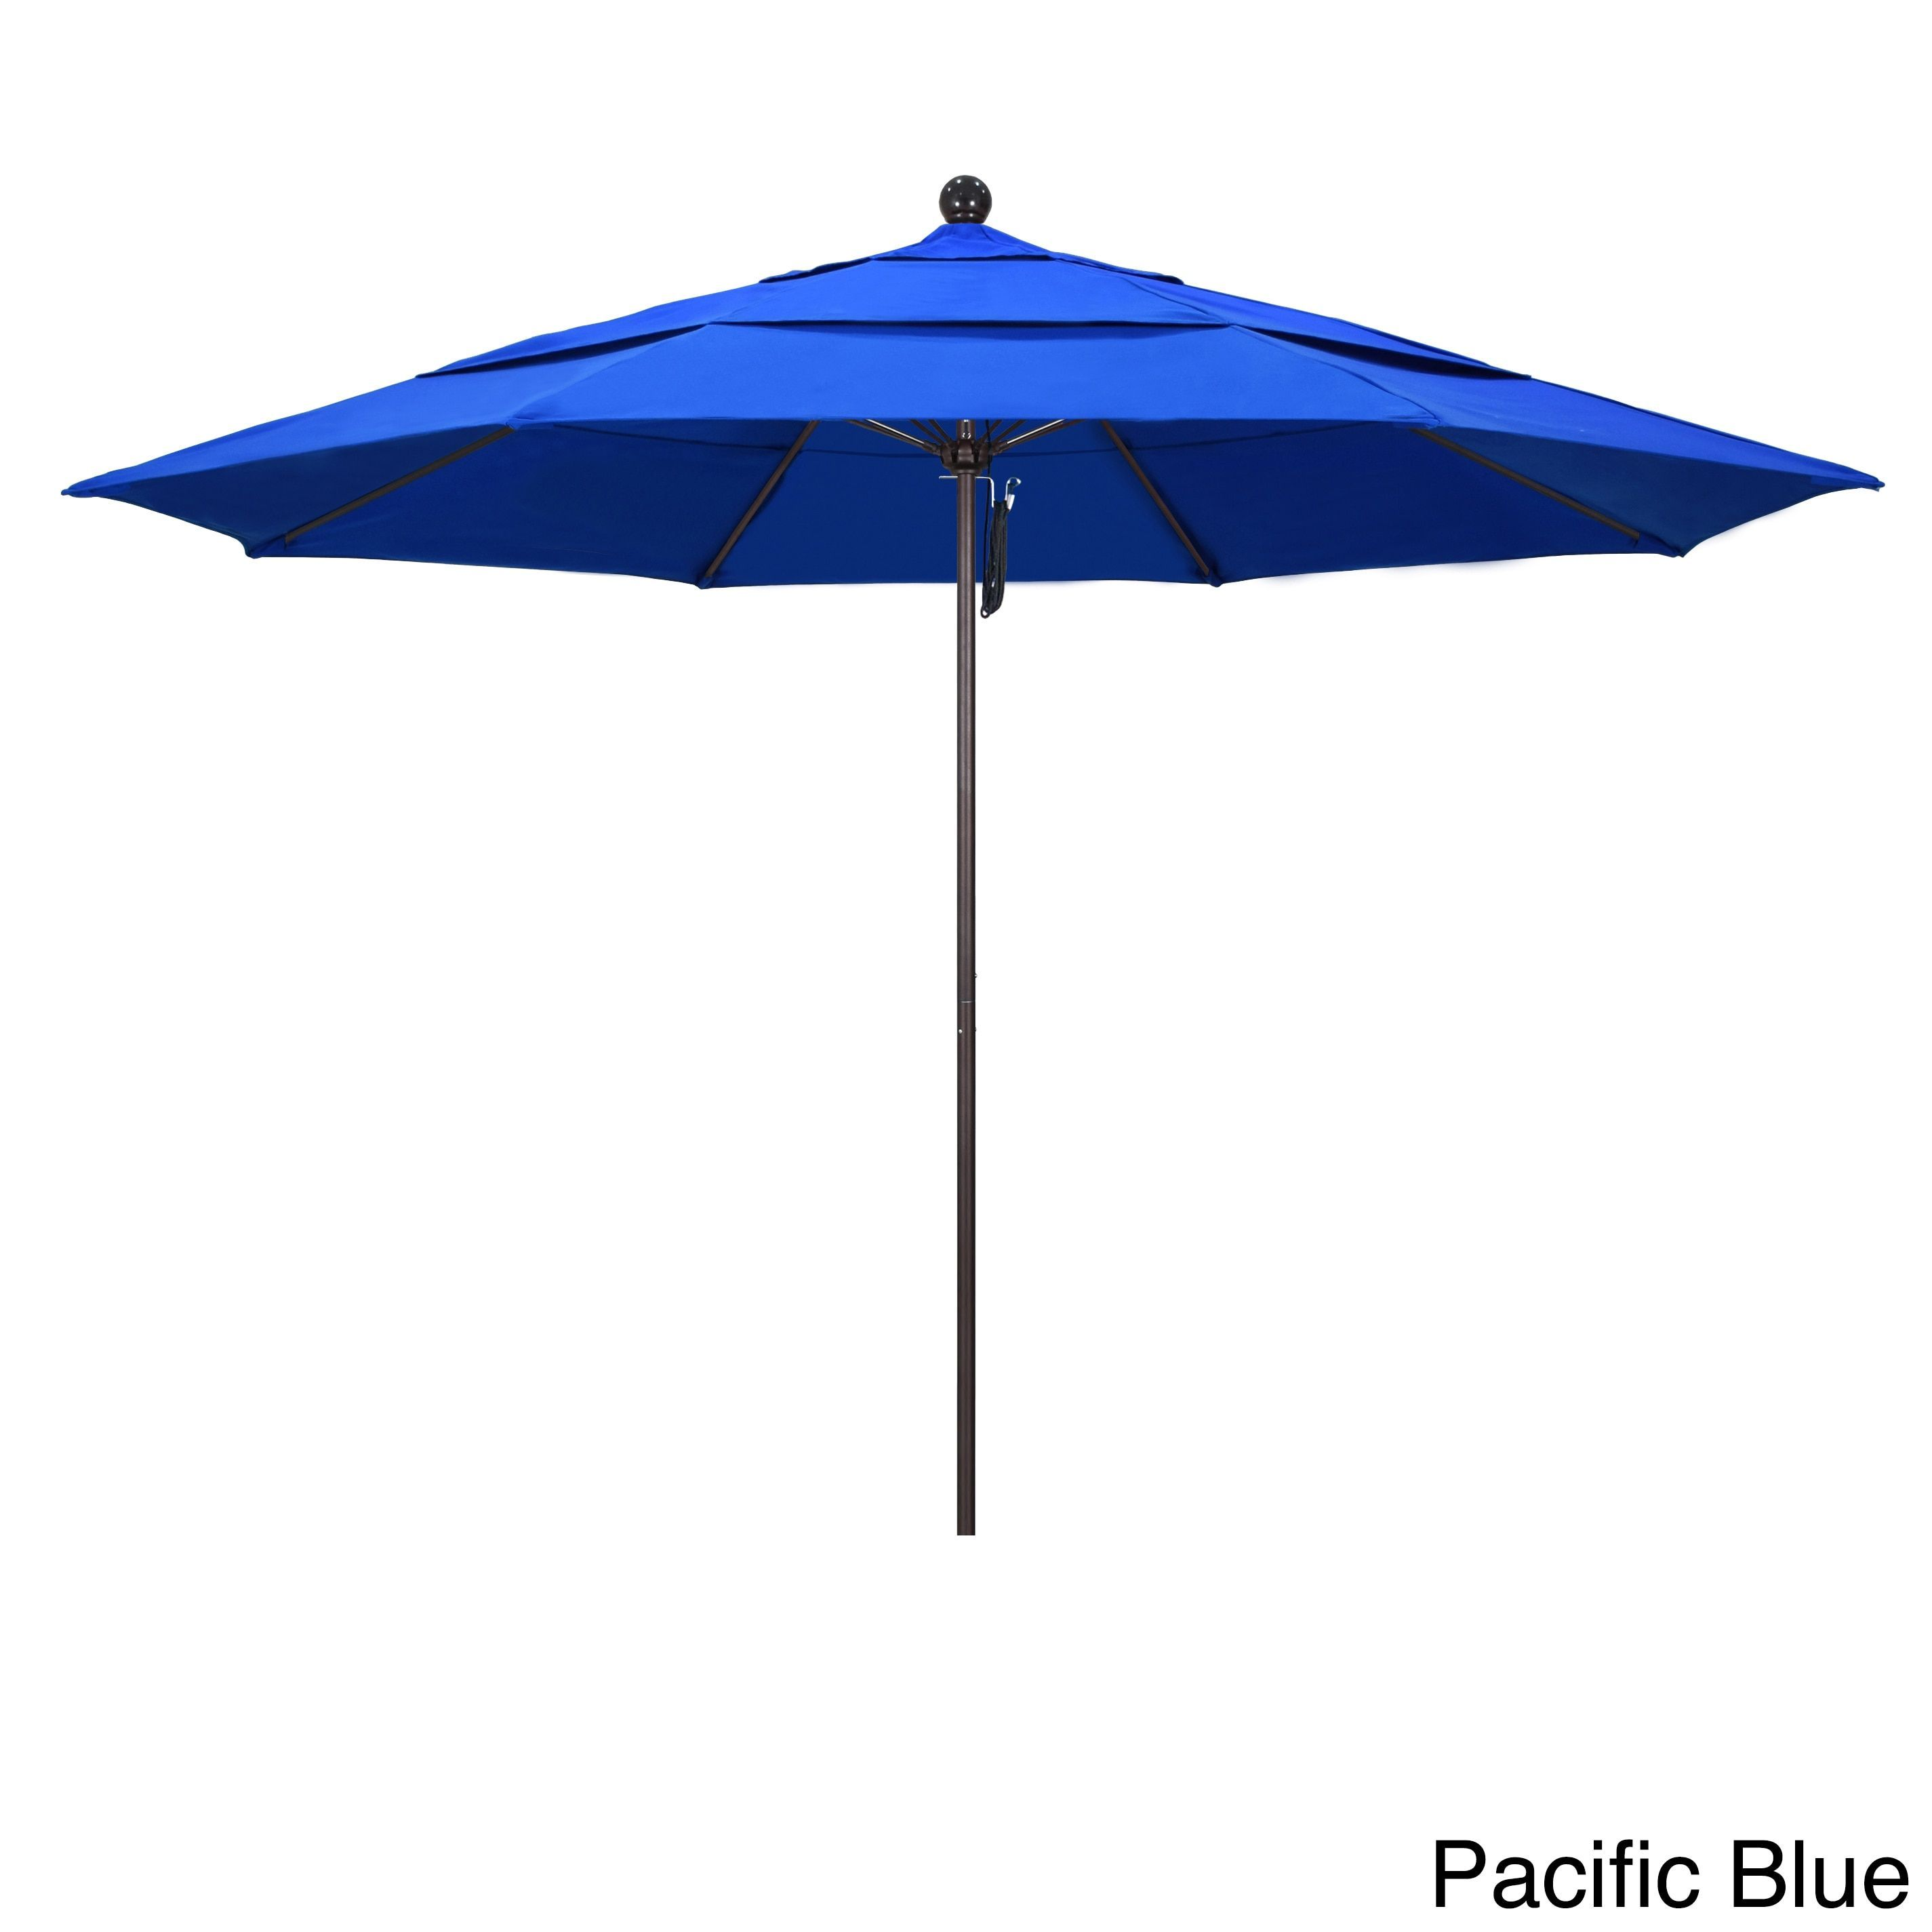 California Umbrella 11' Rd Frame, Fiberglass Rib Market Umbrella, Push Open, Bronze Finish, Sunbrella Fabric